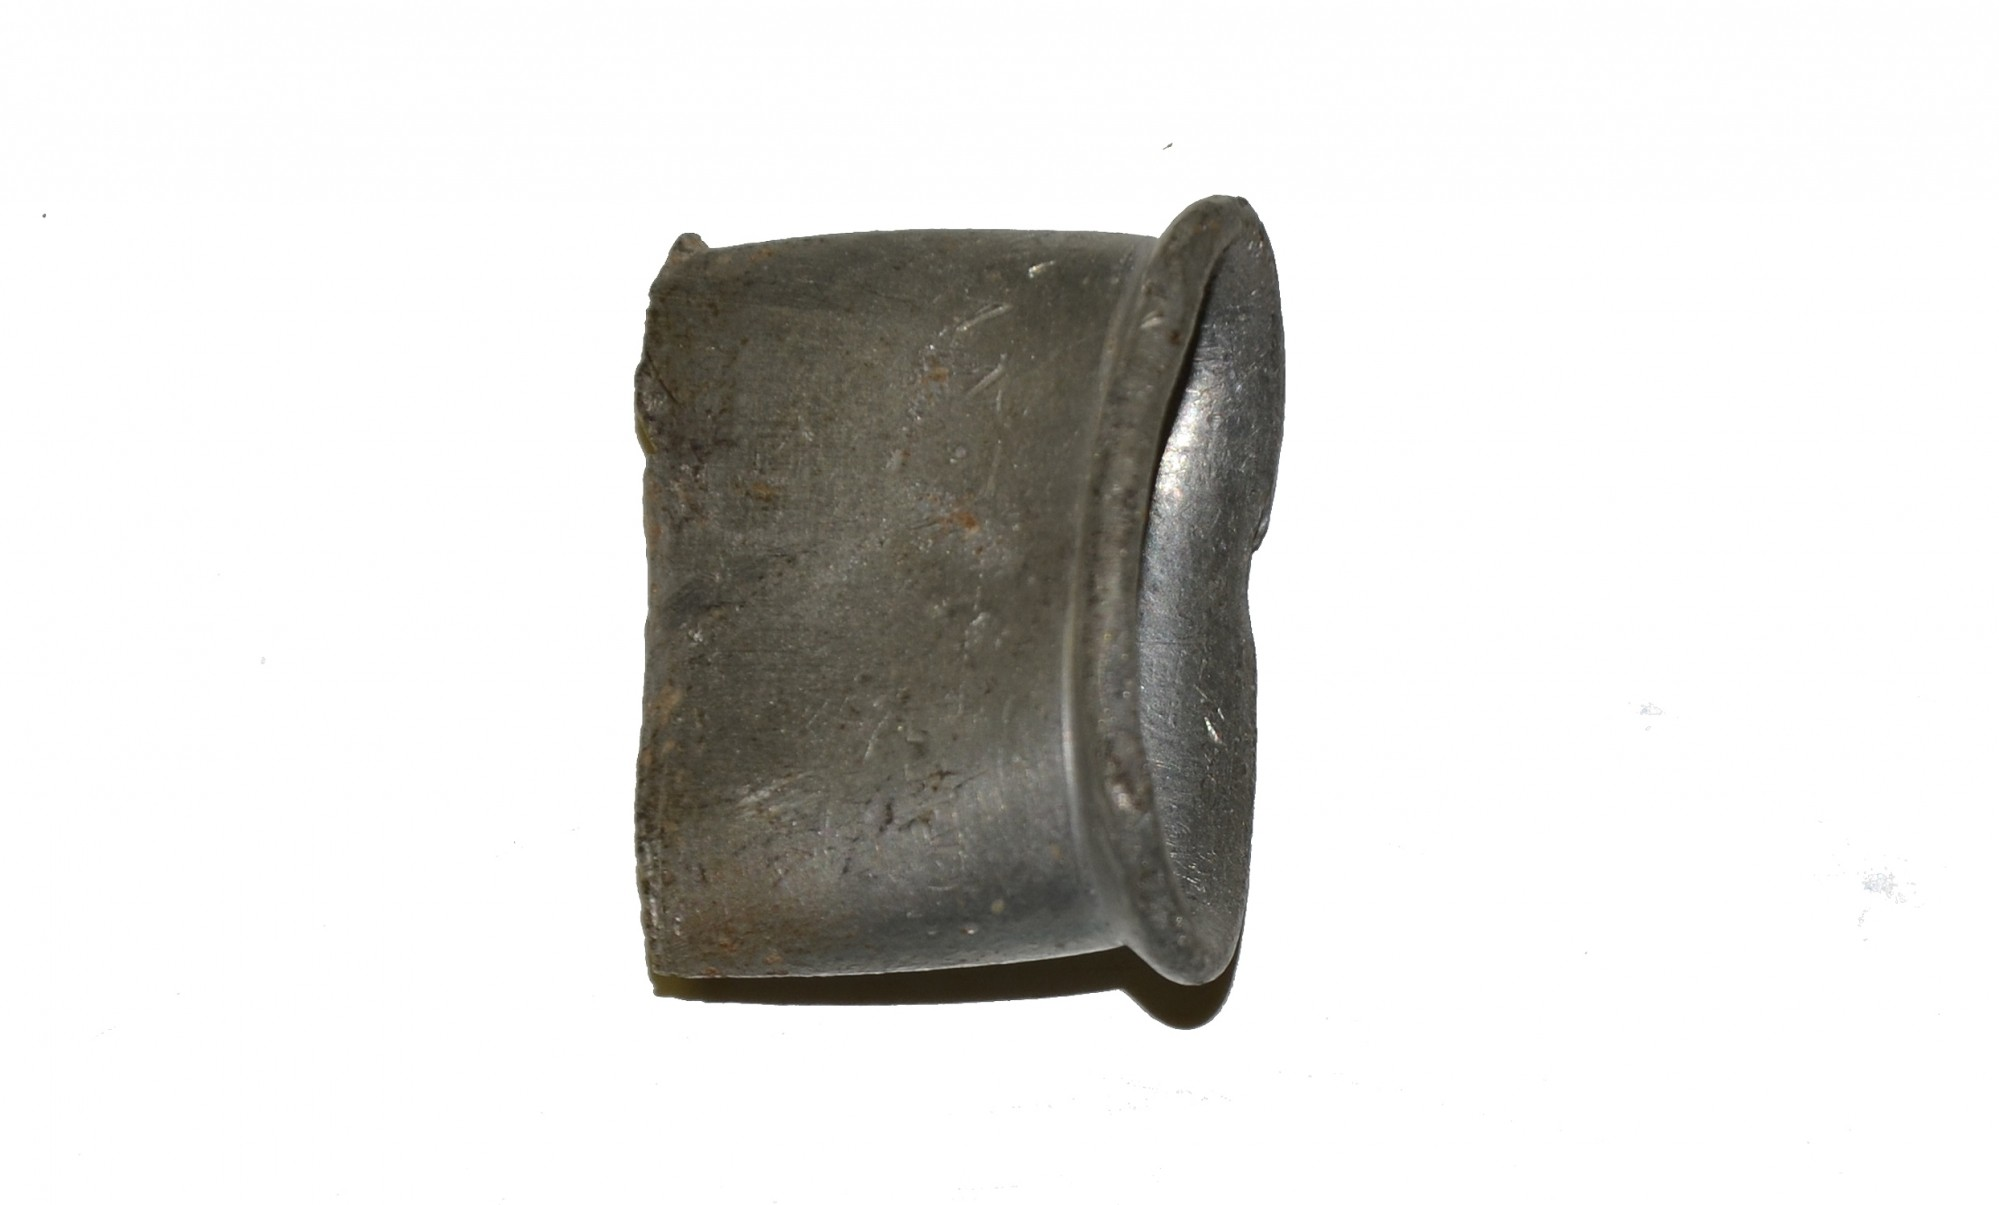 DUG US CANTEEN SPOUT WITH THICK LIP